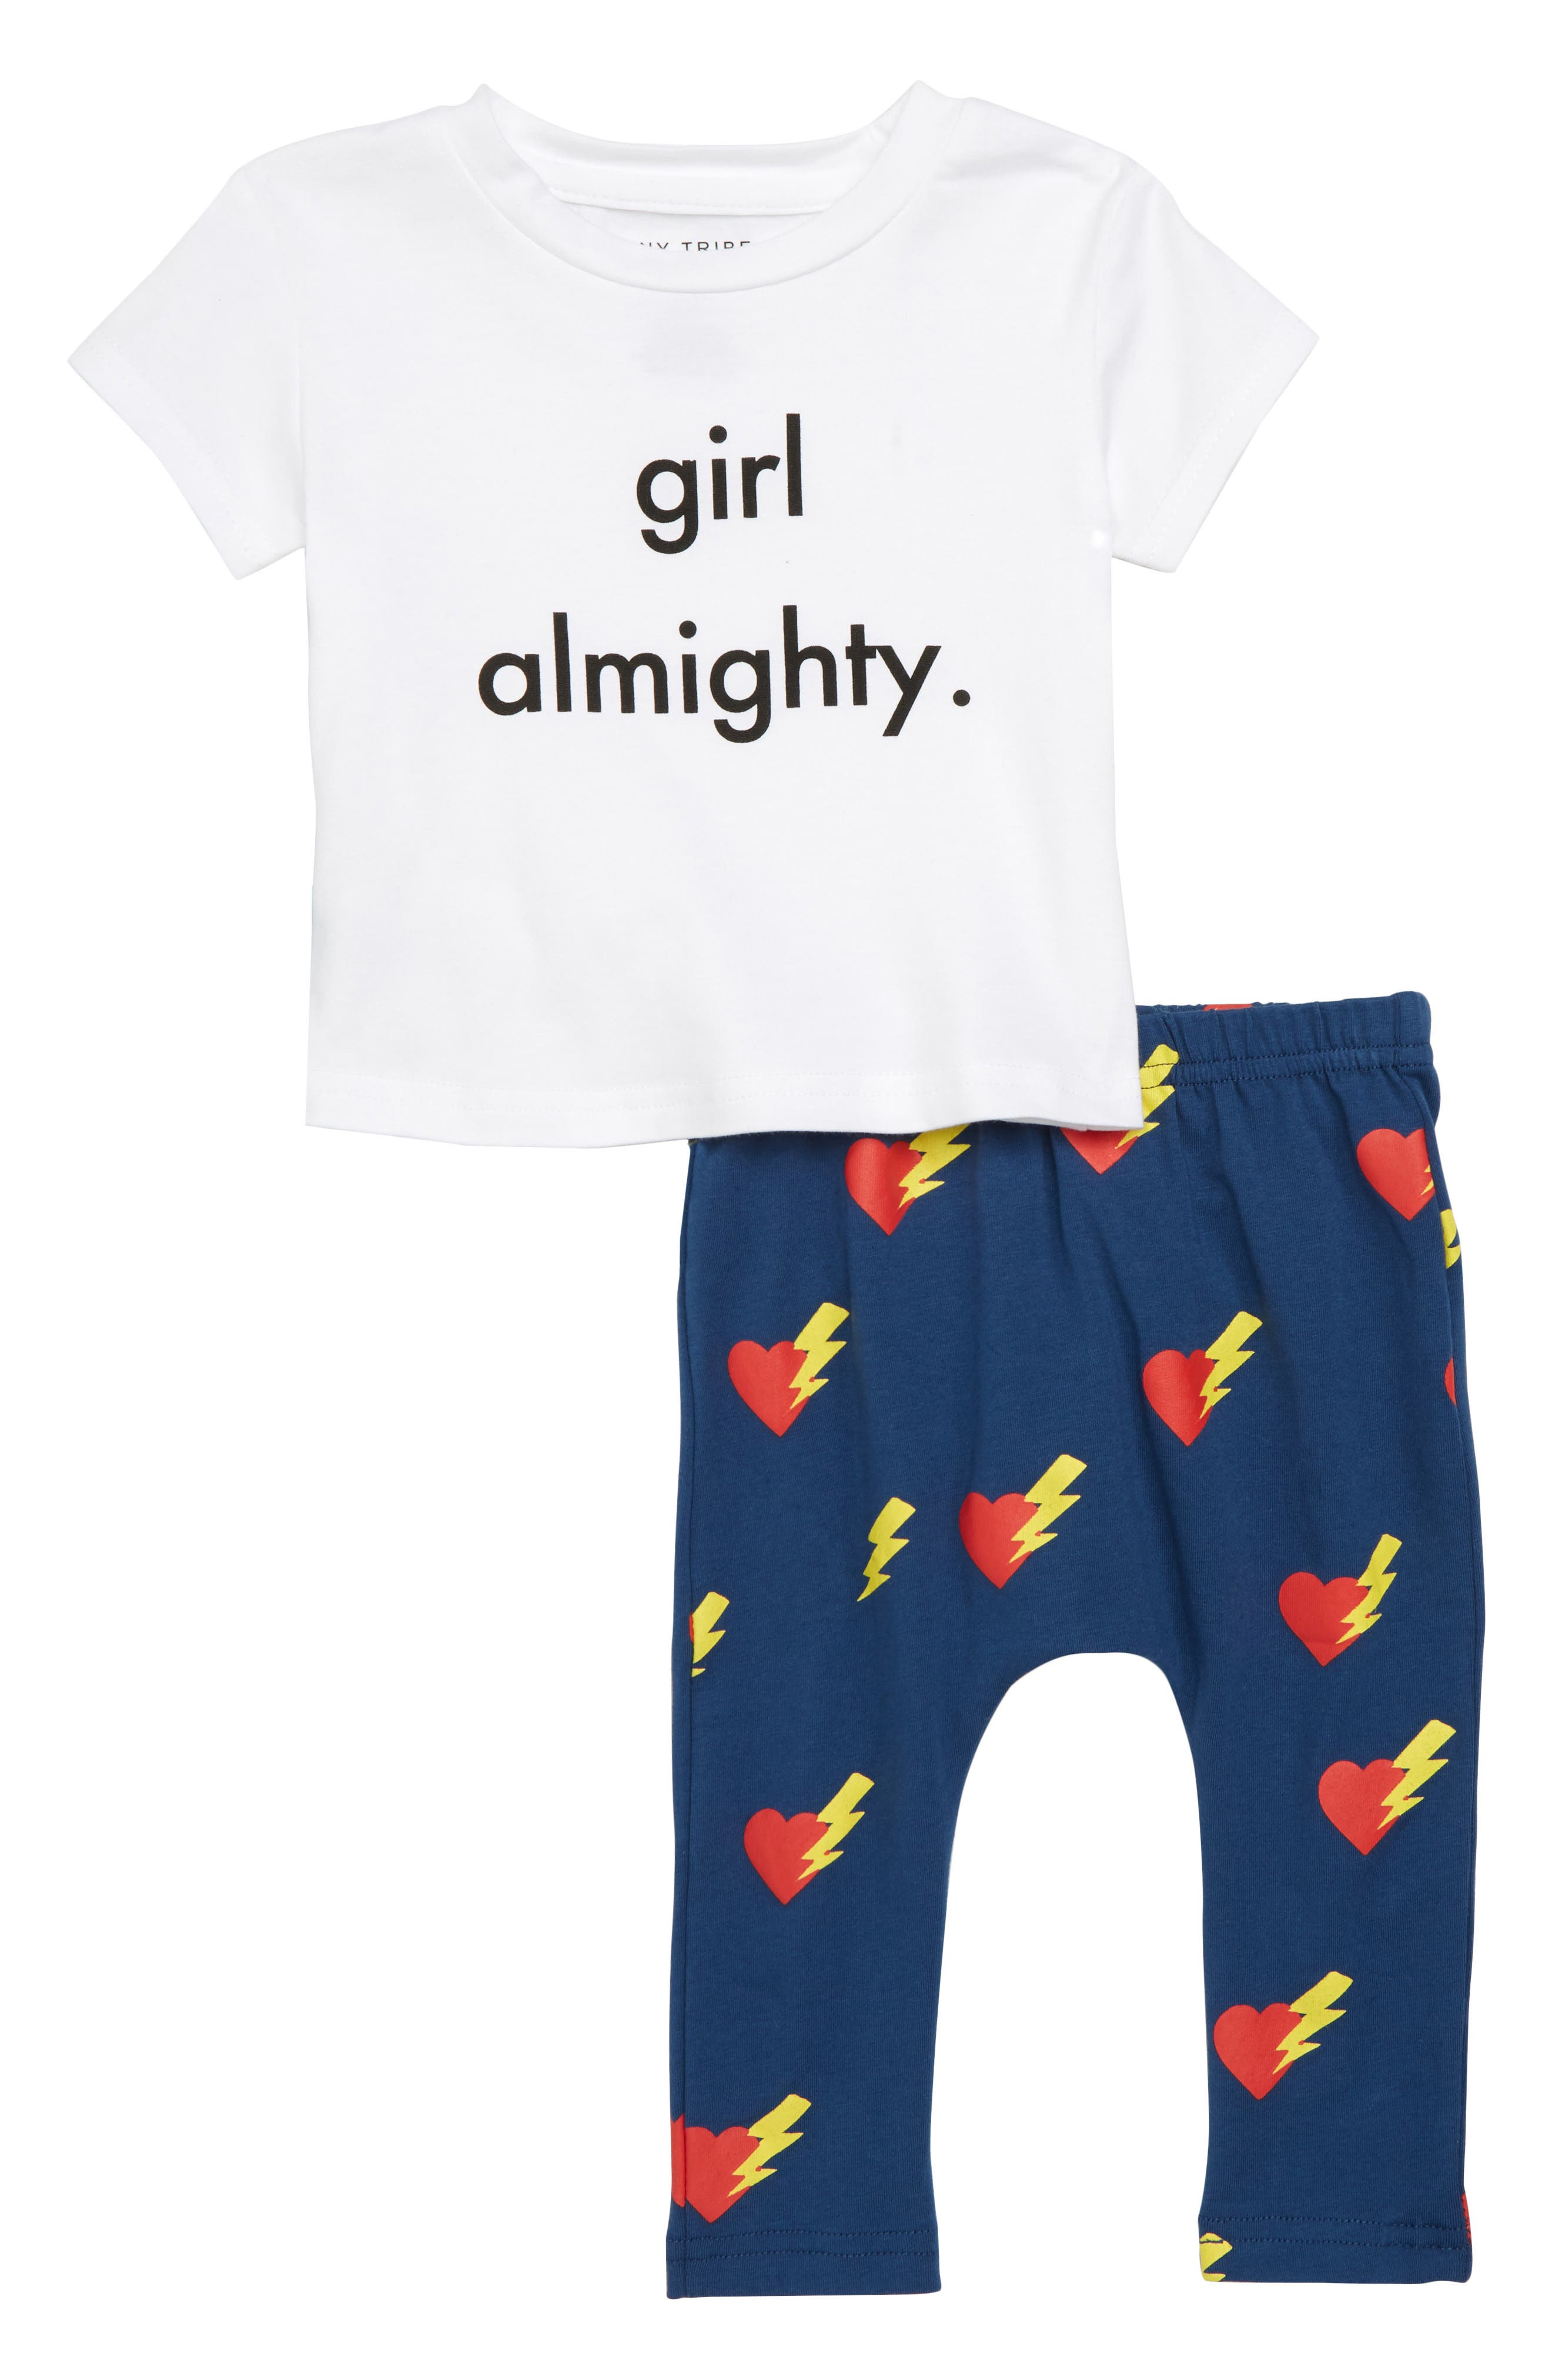 Girls Almighty Tee & Leggings Set,                             Main thumbnail 1, color,                             109